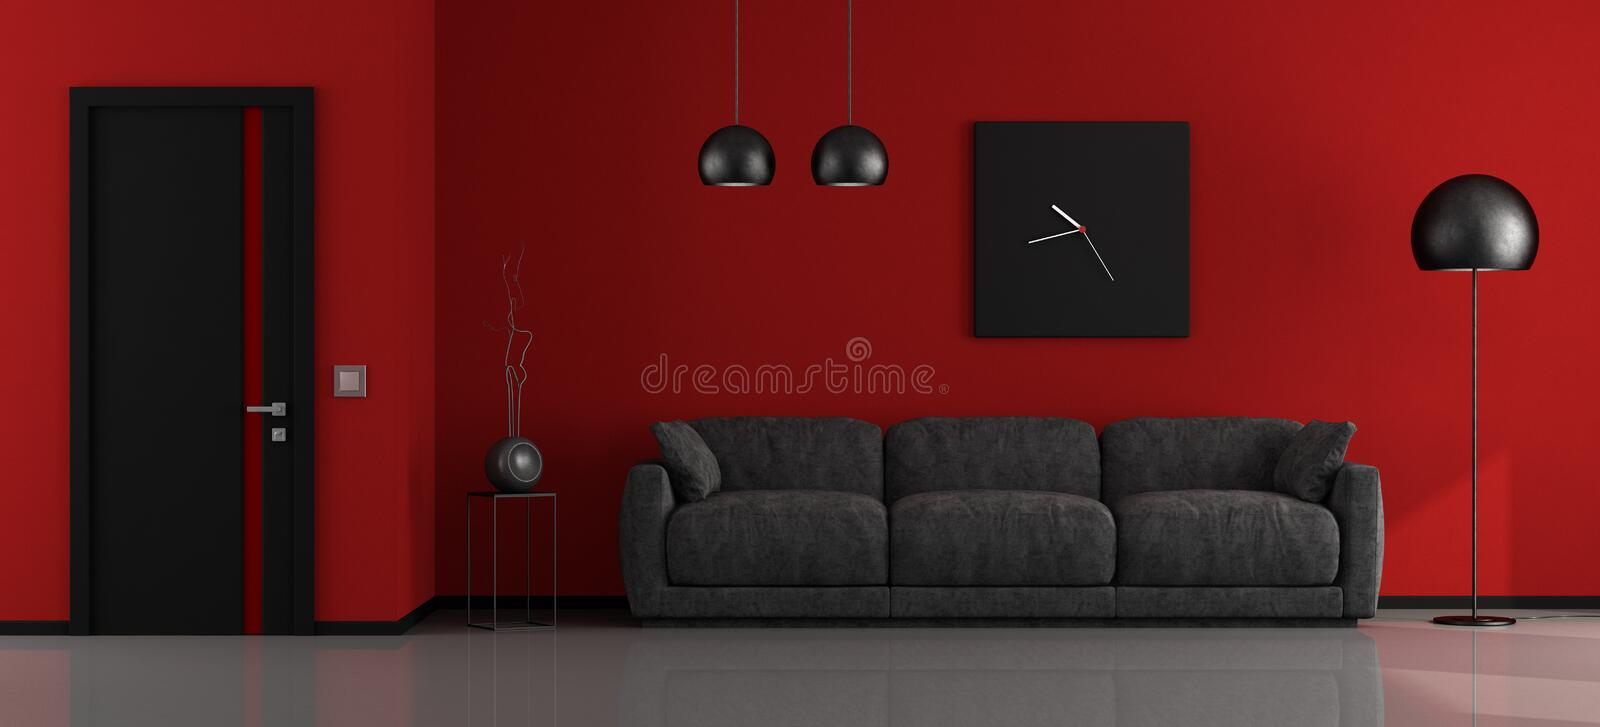 salon minimaliste noir et rouge illustration stock. Black Bedroom Furniture Sets. Home Design Ideas